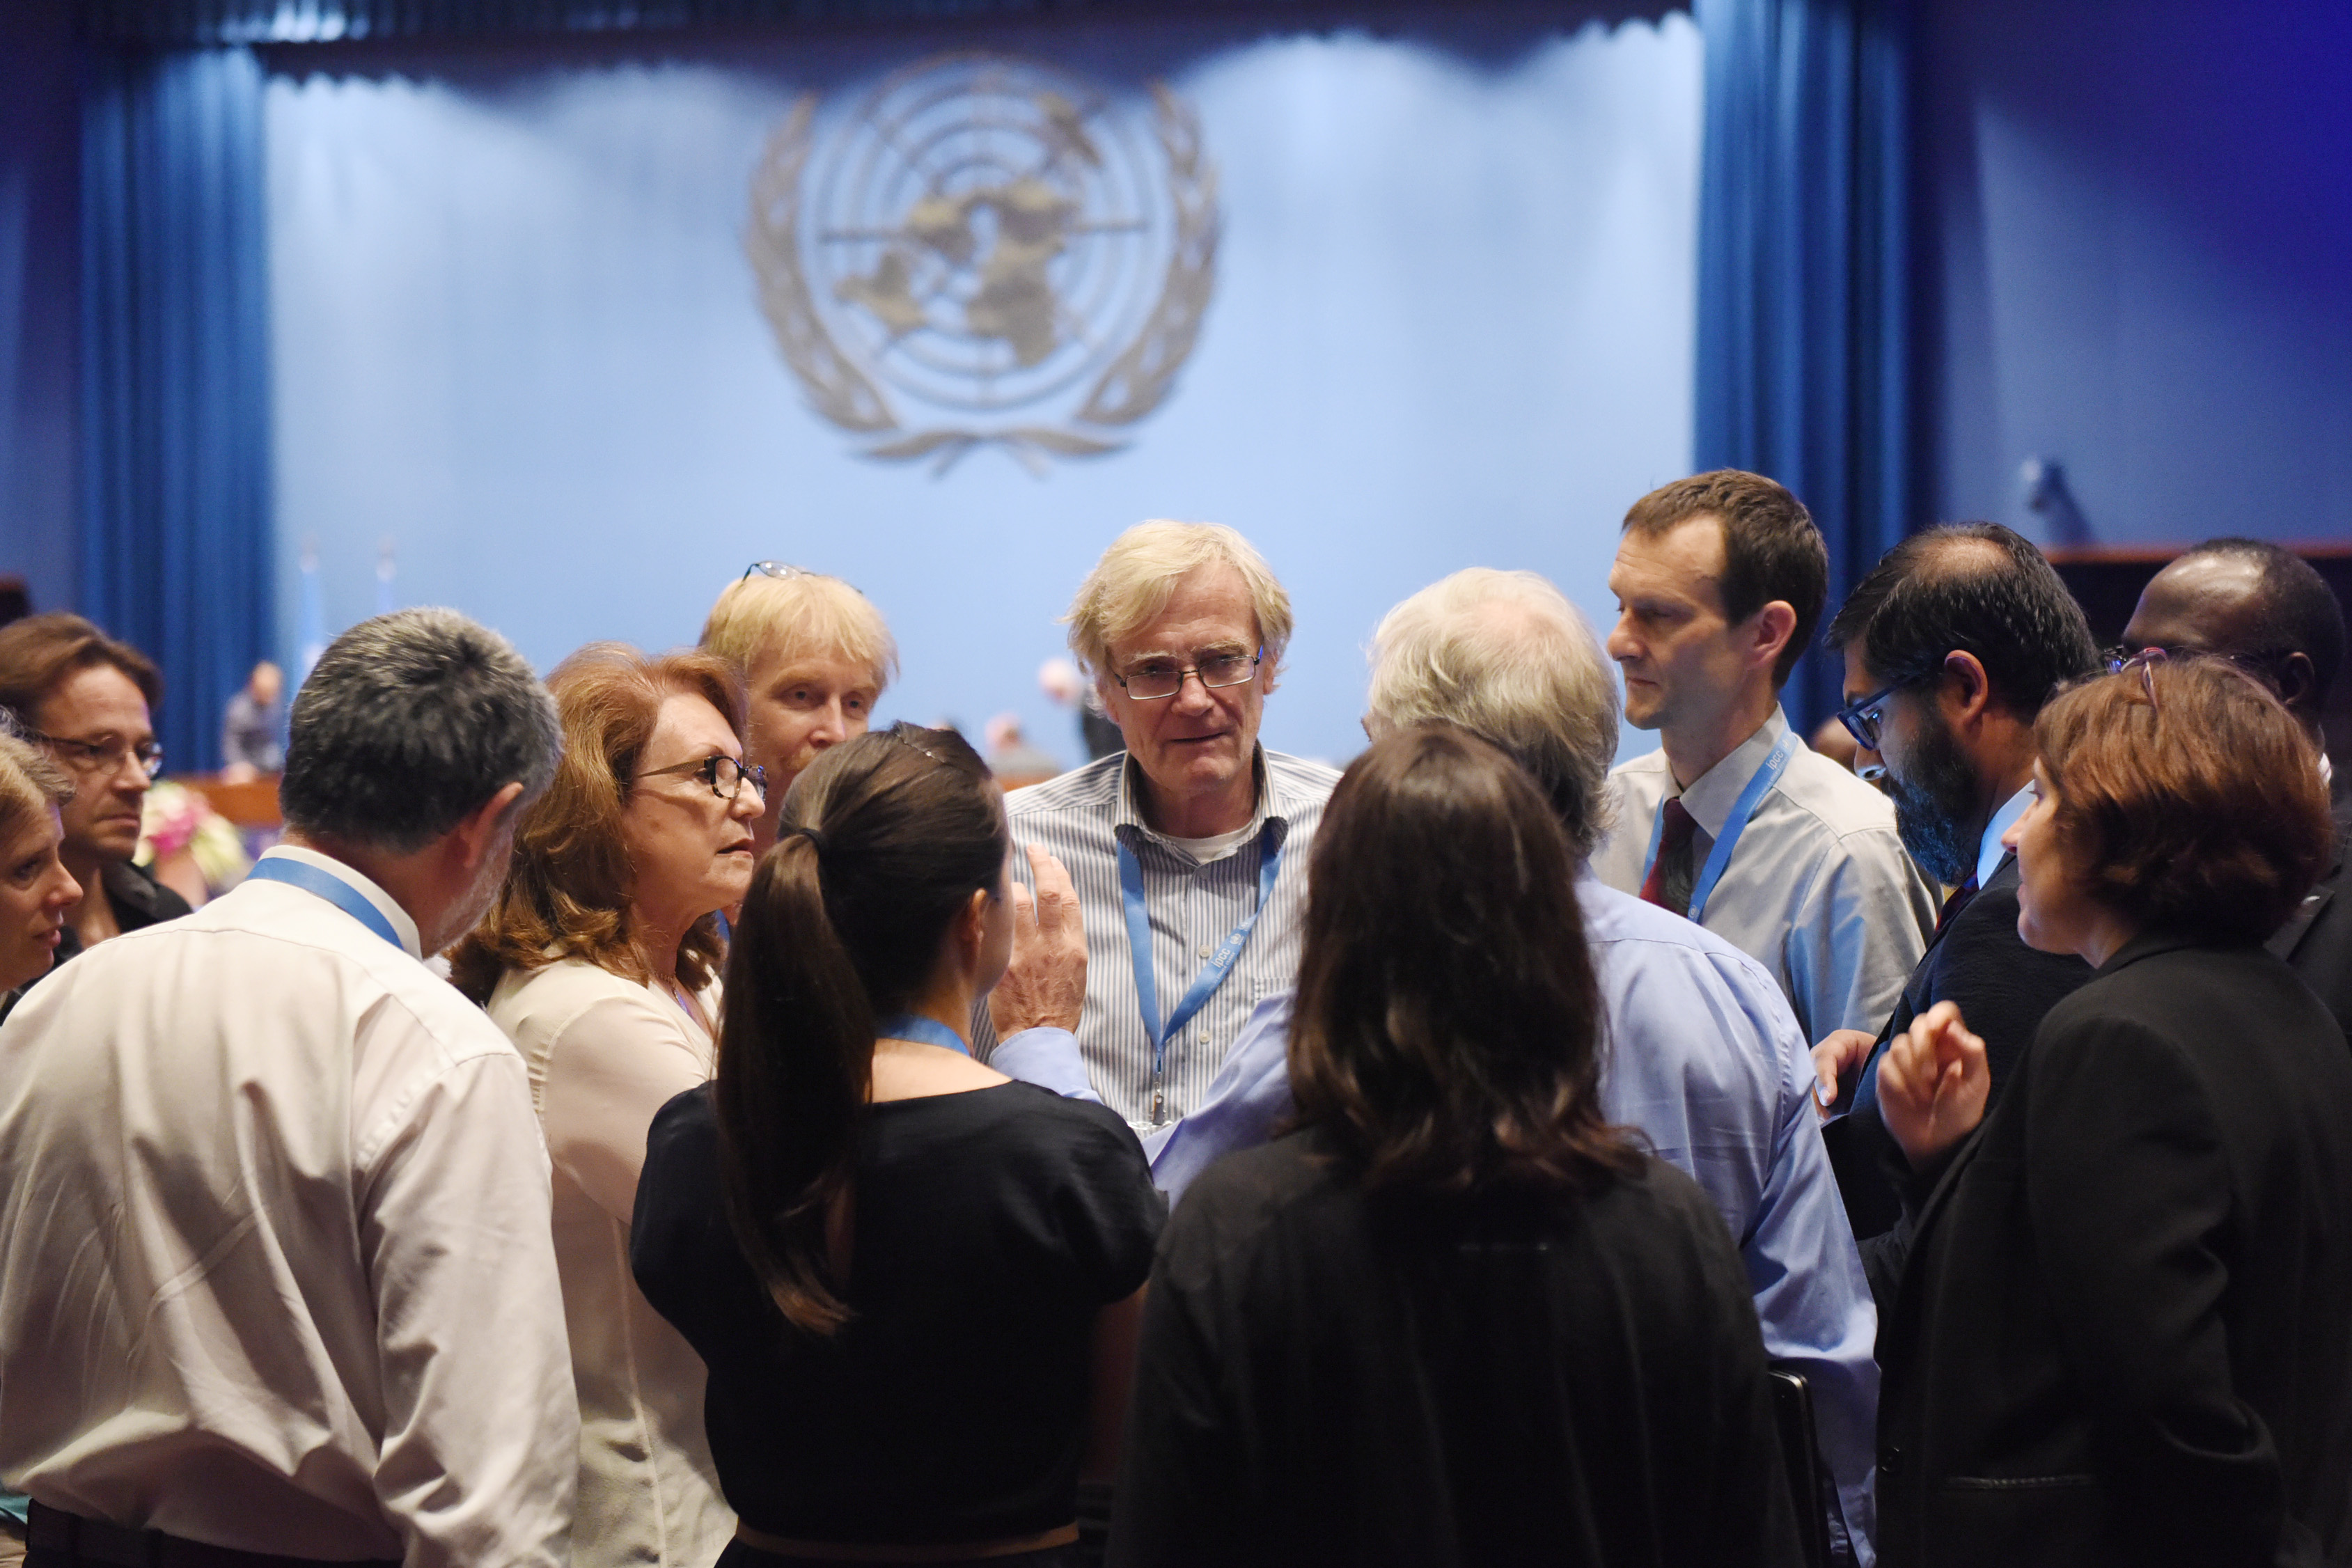 Delegates discuss the decision text on the 1.5°C Special Report